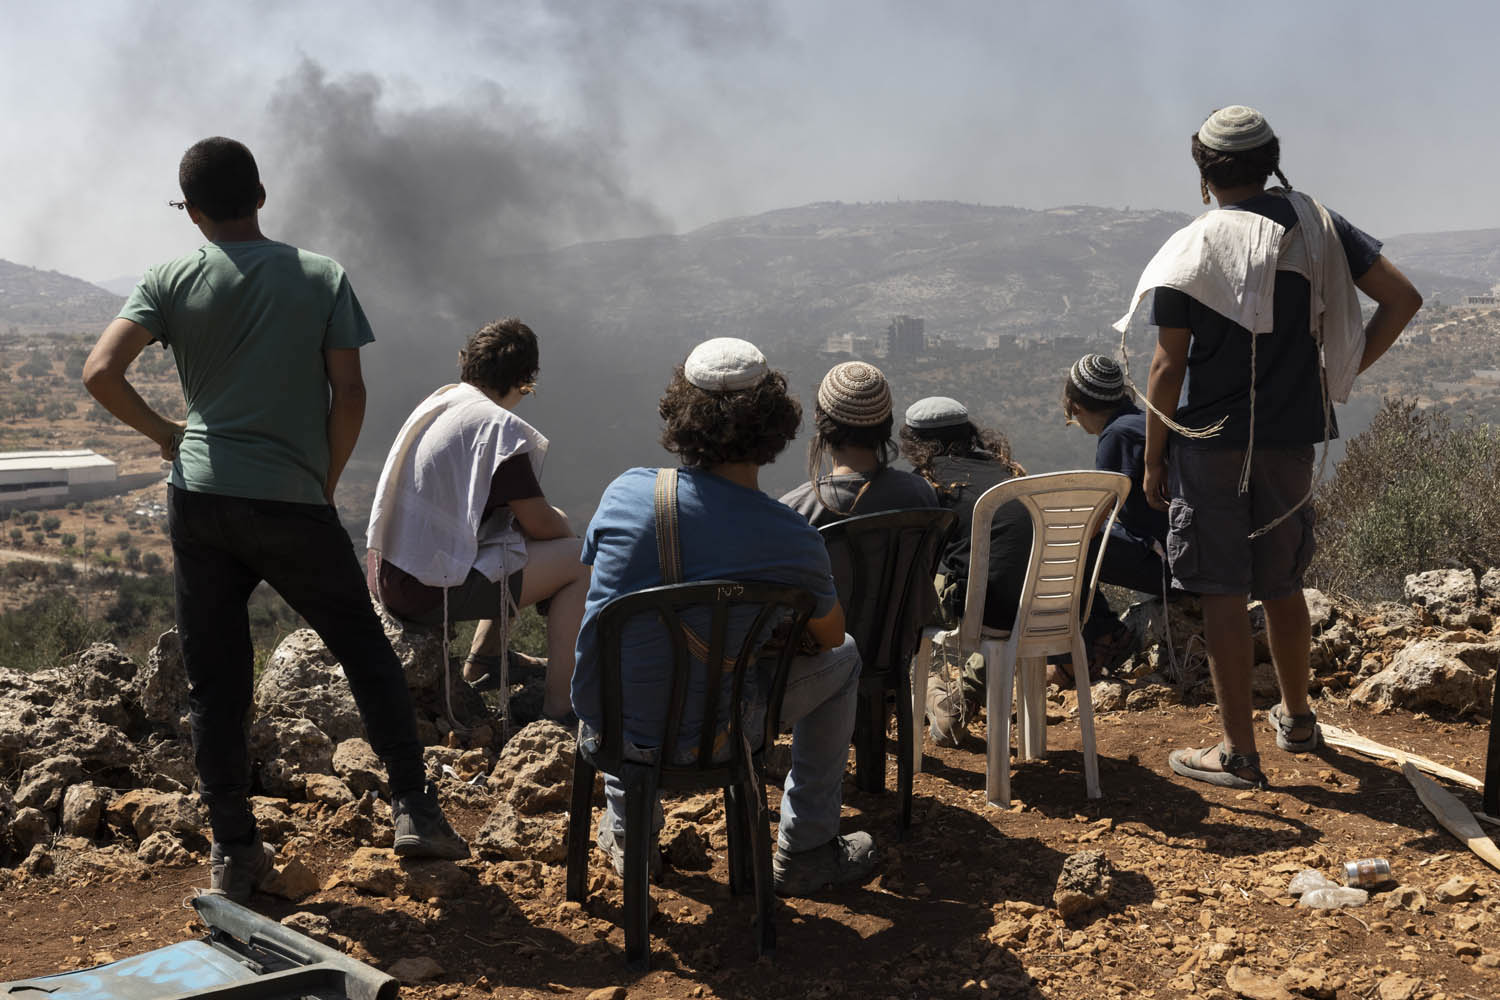 Settler youth in the outpost of Eviatar watch as smoke rises from burning tires near the Palestinian town of Beita, West Bank, June 28, 2021. (Oren Ziv)